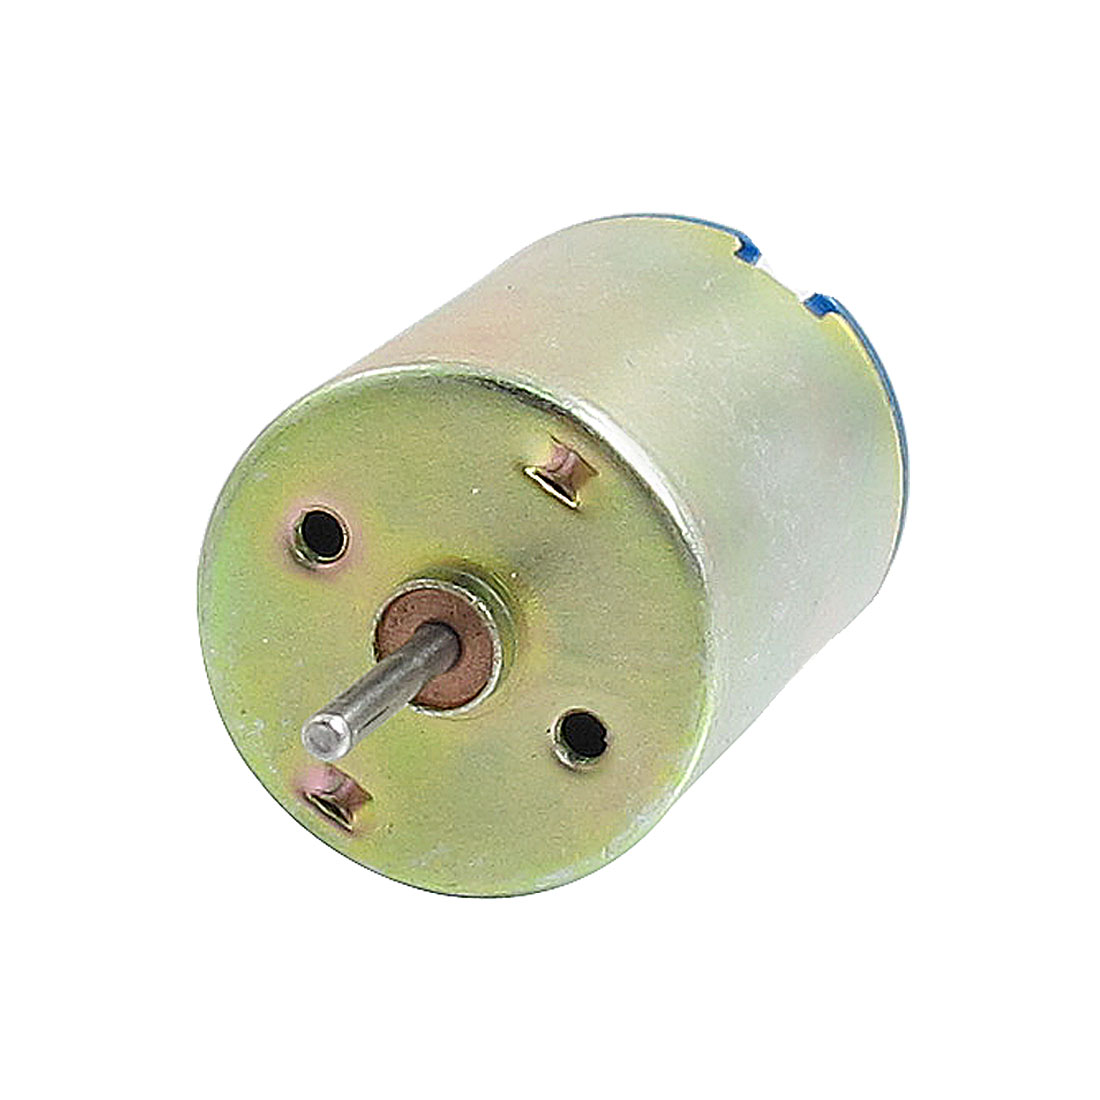 6-12V 5000-10000 RPM 2 Pole Connector Permanent Magnet Micro DC Motor